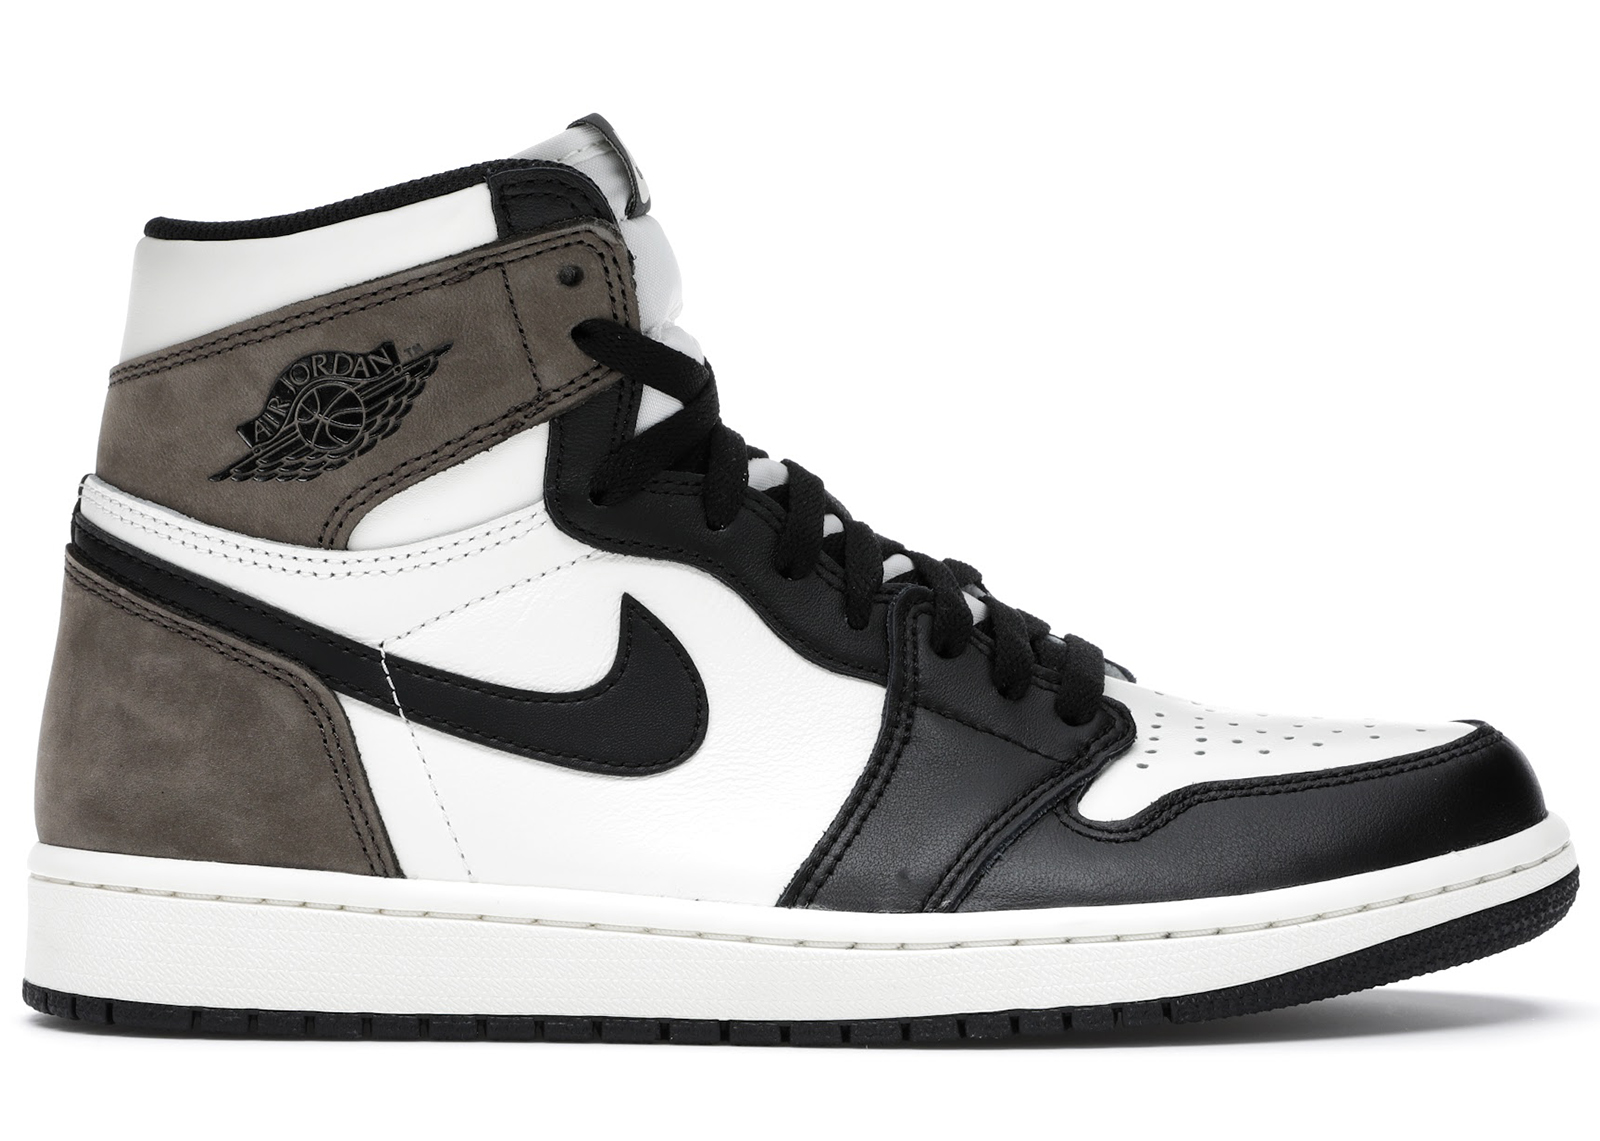 Jordan 1 Retro High Dark Mocha - 555088-105